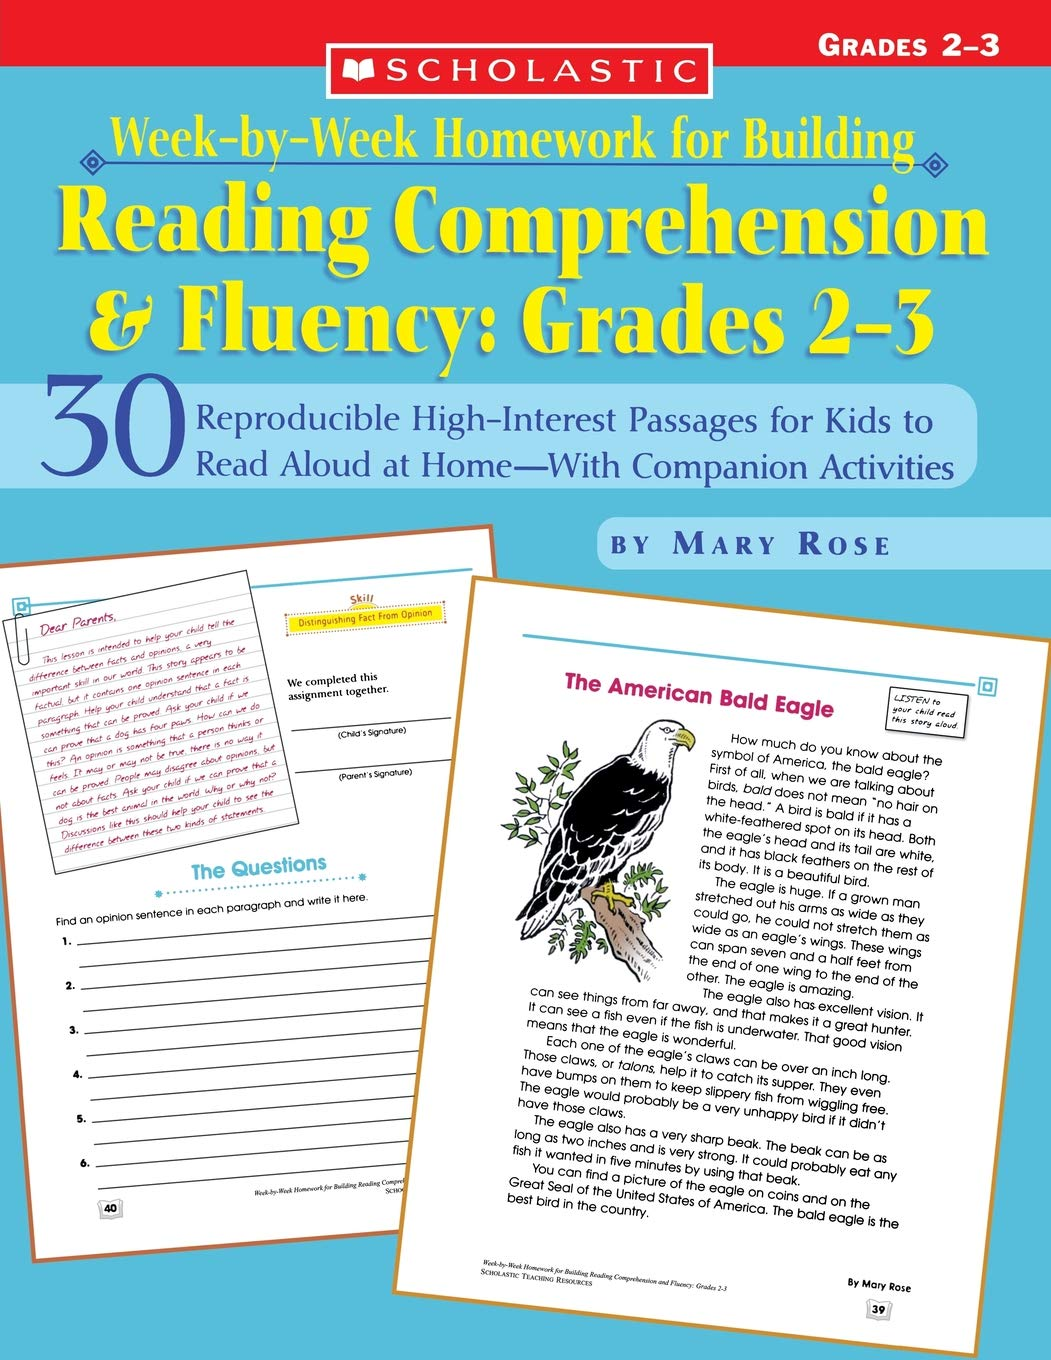 Week-by-Week Homework for Building Reading Comprehension and